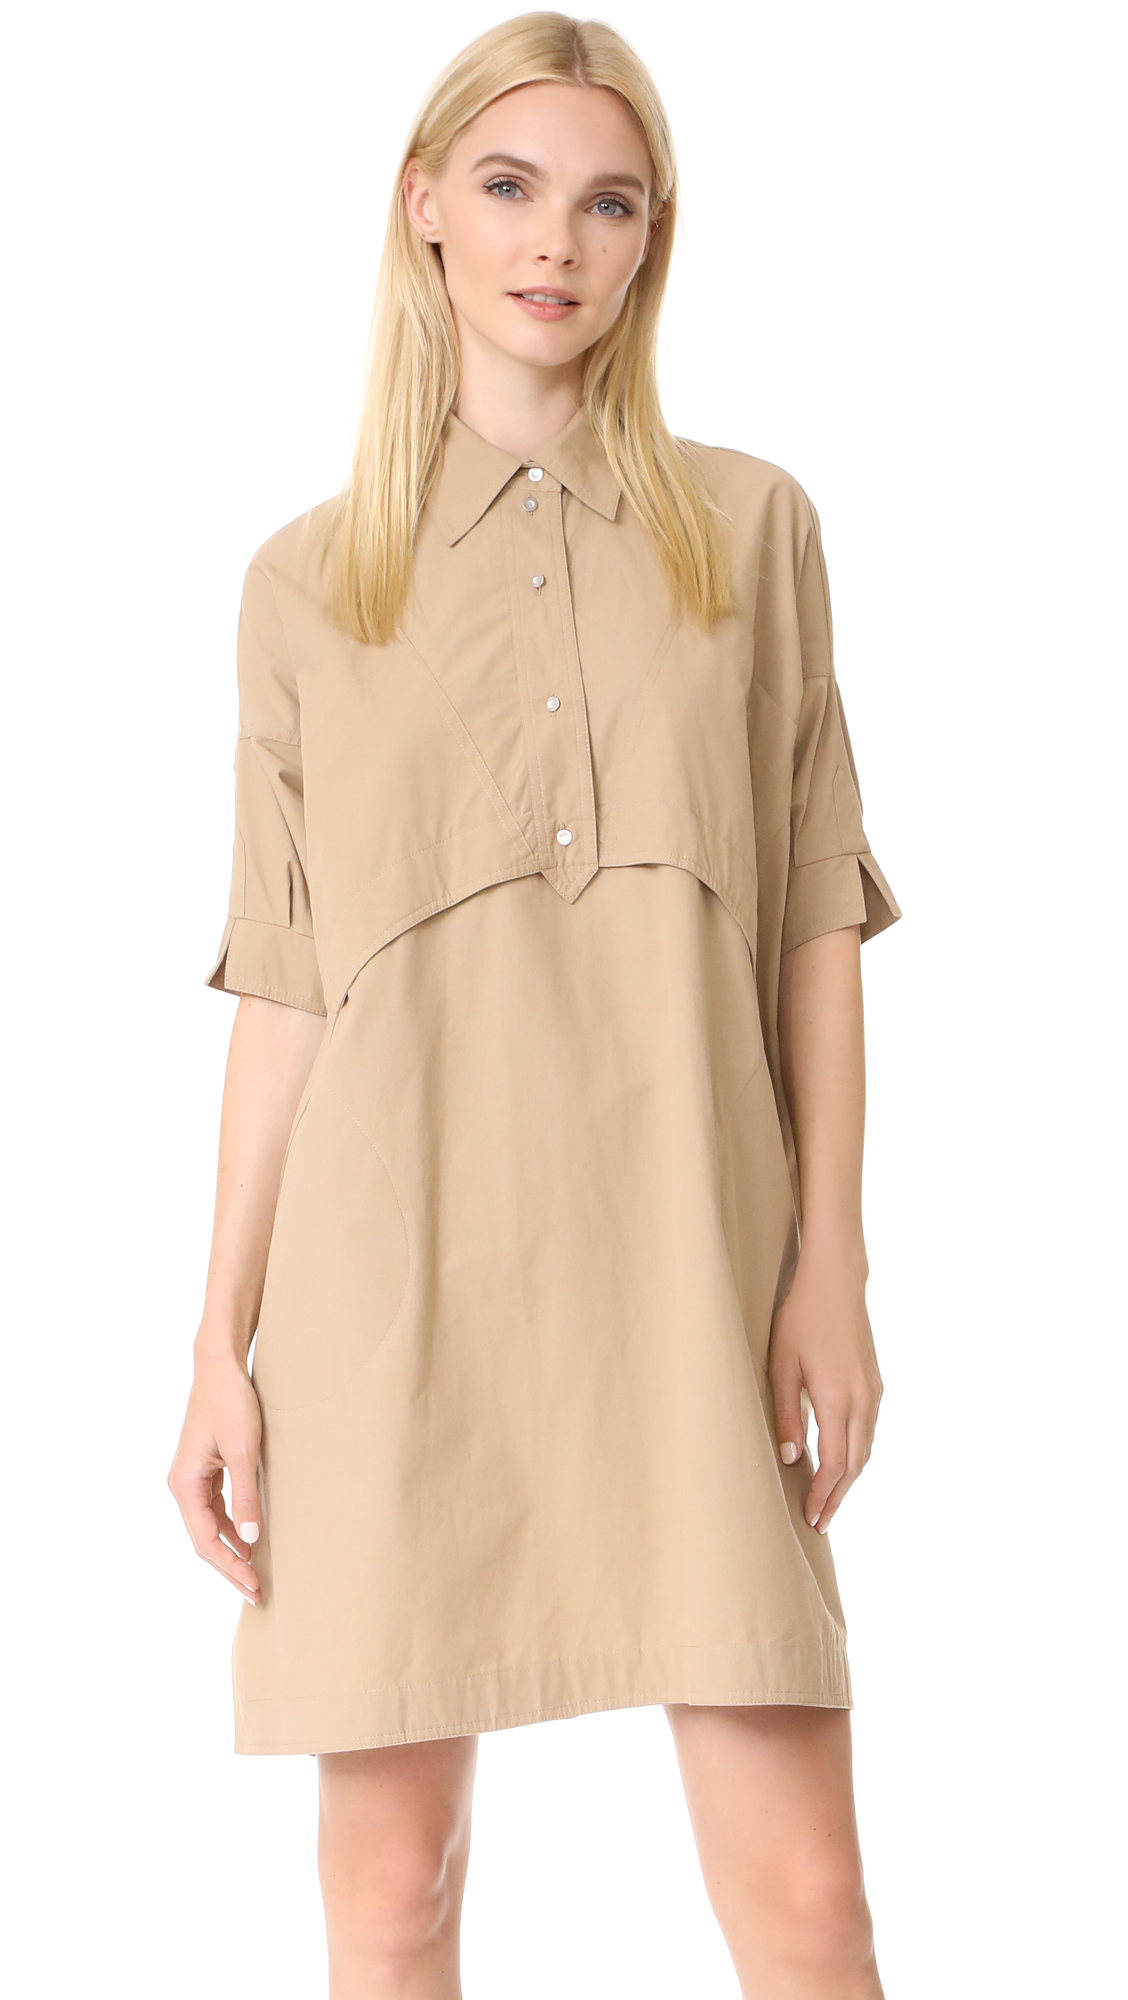 Opening Ceremony Poplin Elliptical Hem Dress - Incense